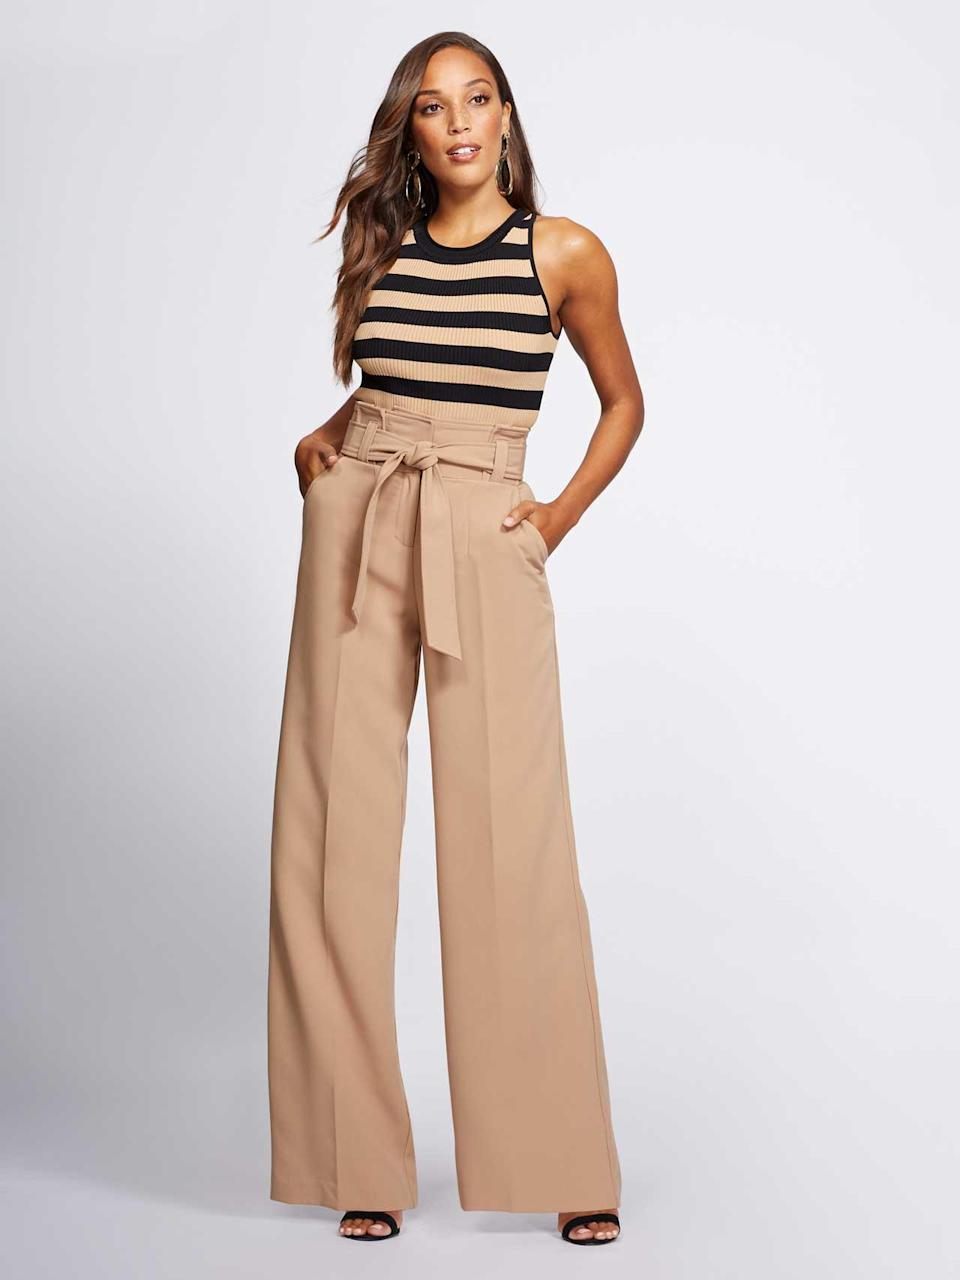 A striped tank top and wide-leg trousers make a casual yet put-together look. (Photo: Courtesy of New York & Company)